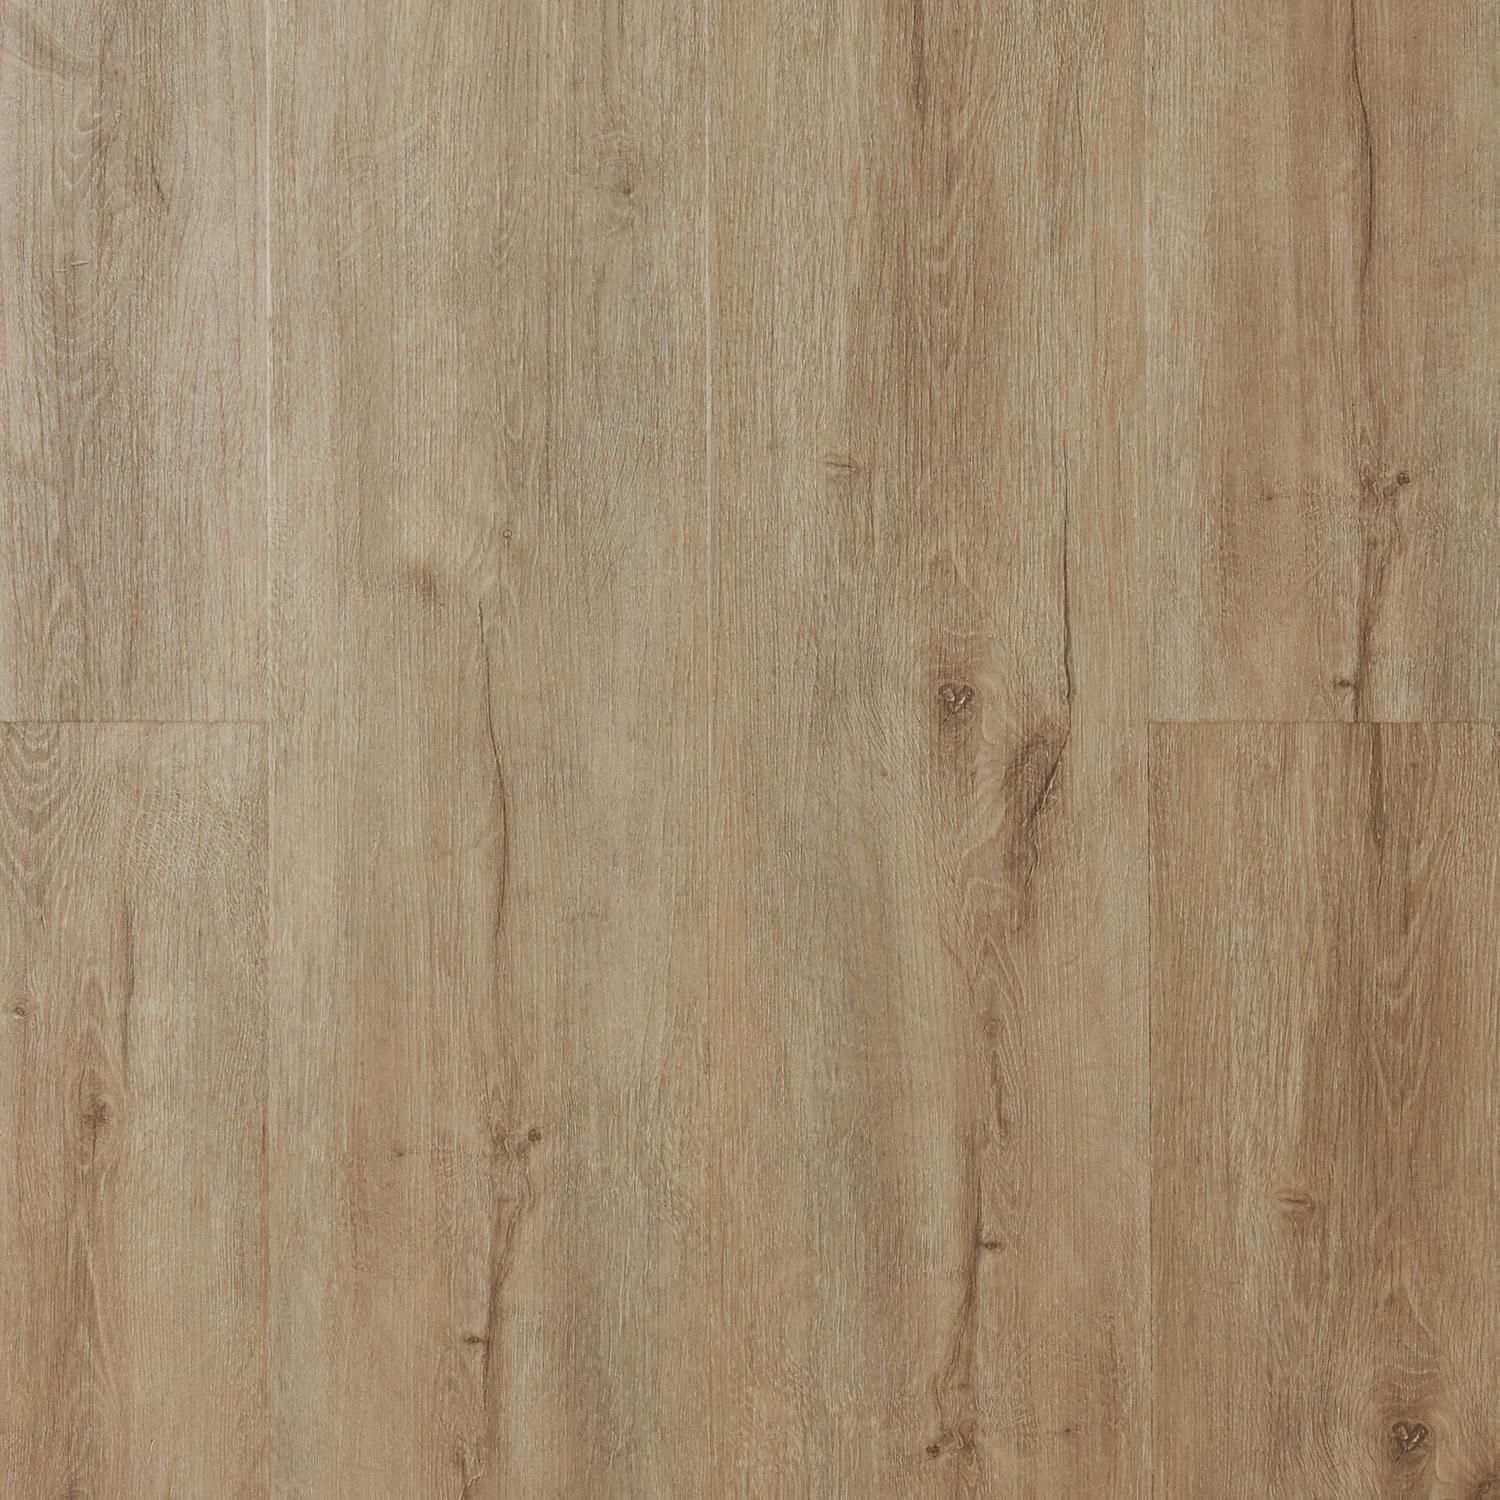 Nucore Gray Blonde Plank With Cork Back 6 5mm 100376946 Floor And Decor